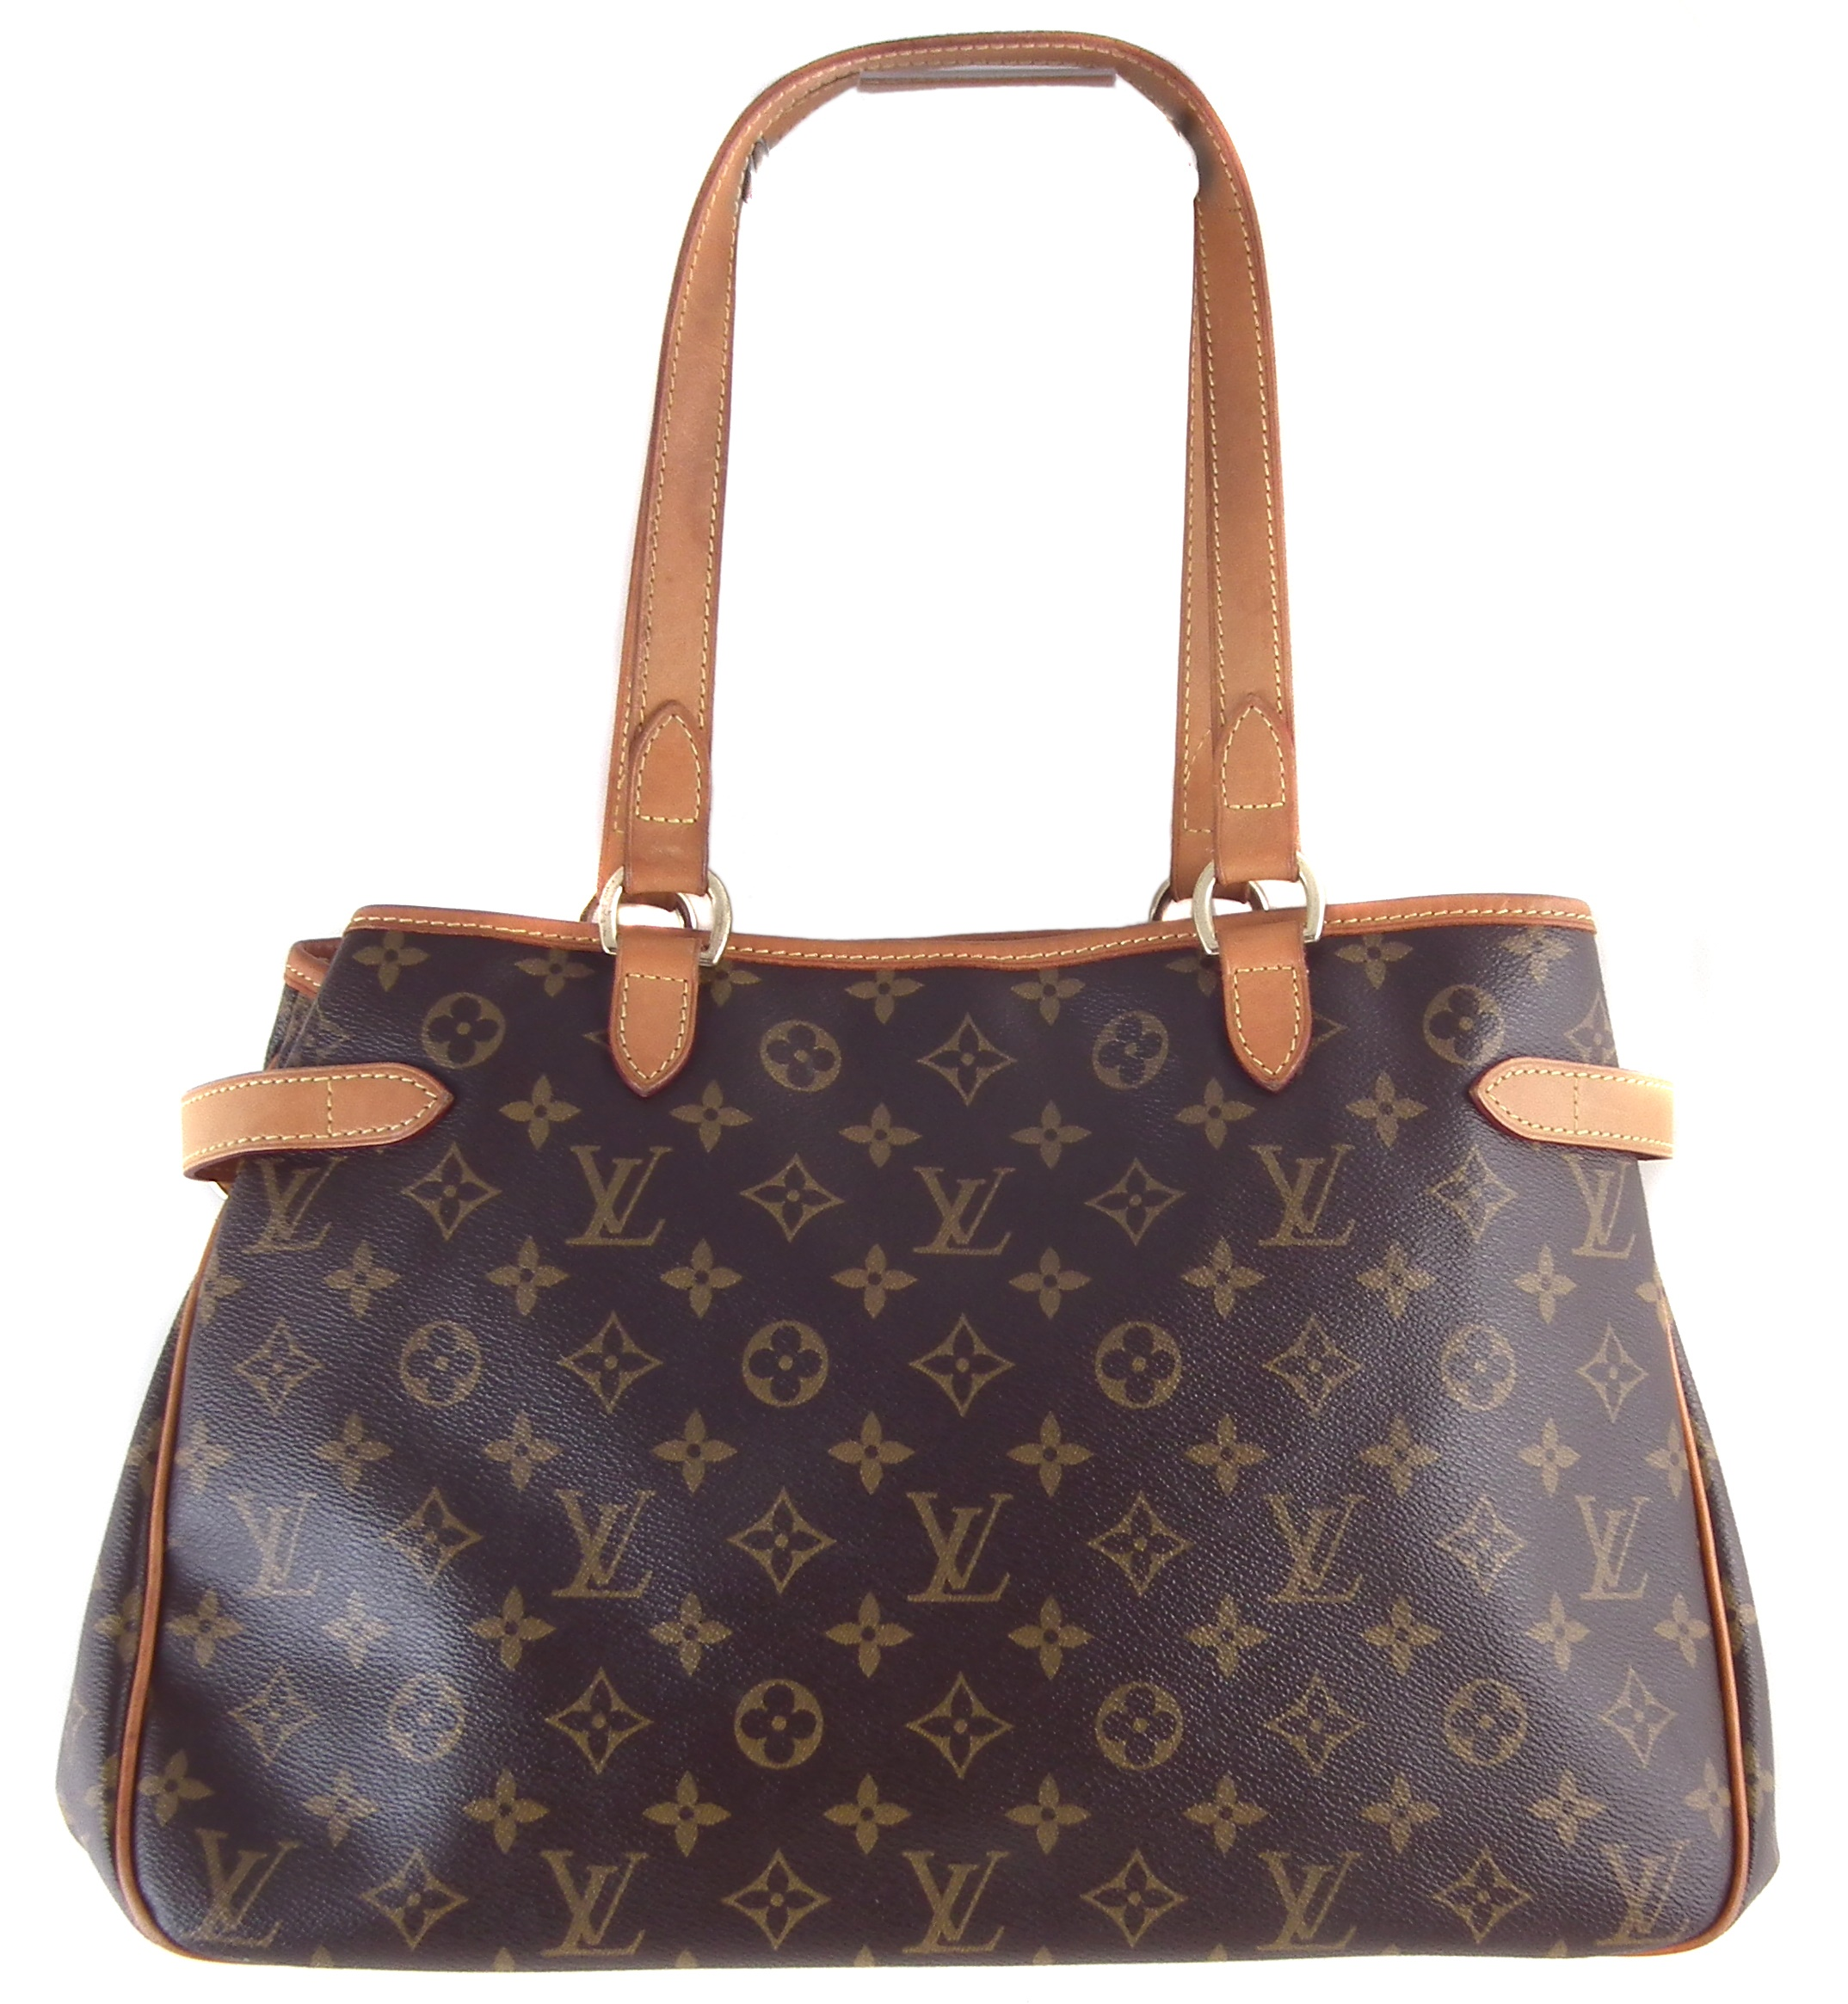 A Louis Vuitton Monogram Batignolles Horizontal GM handbag,